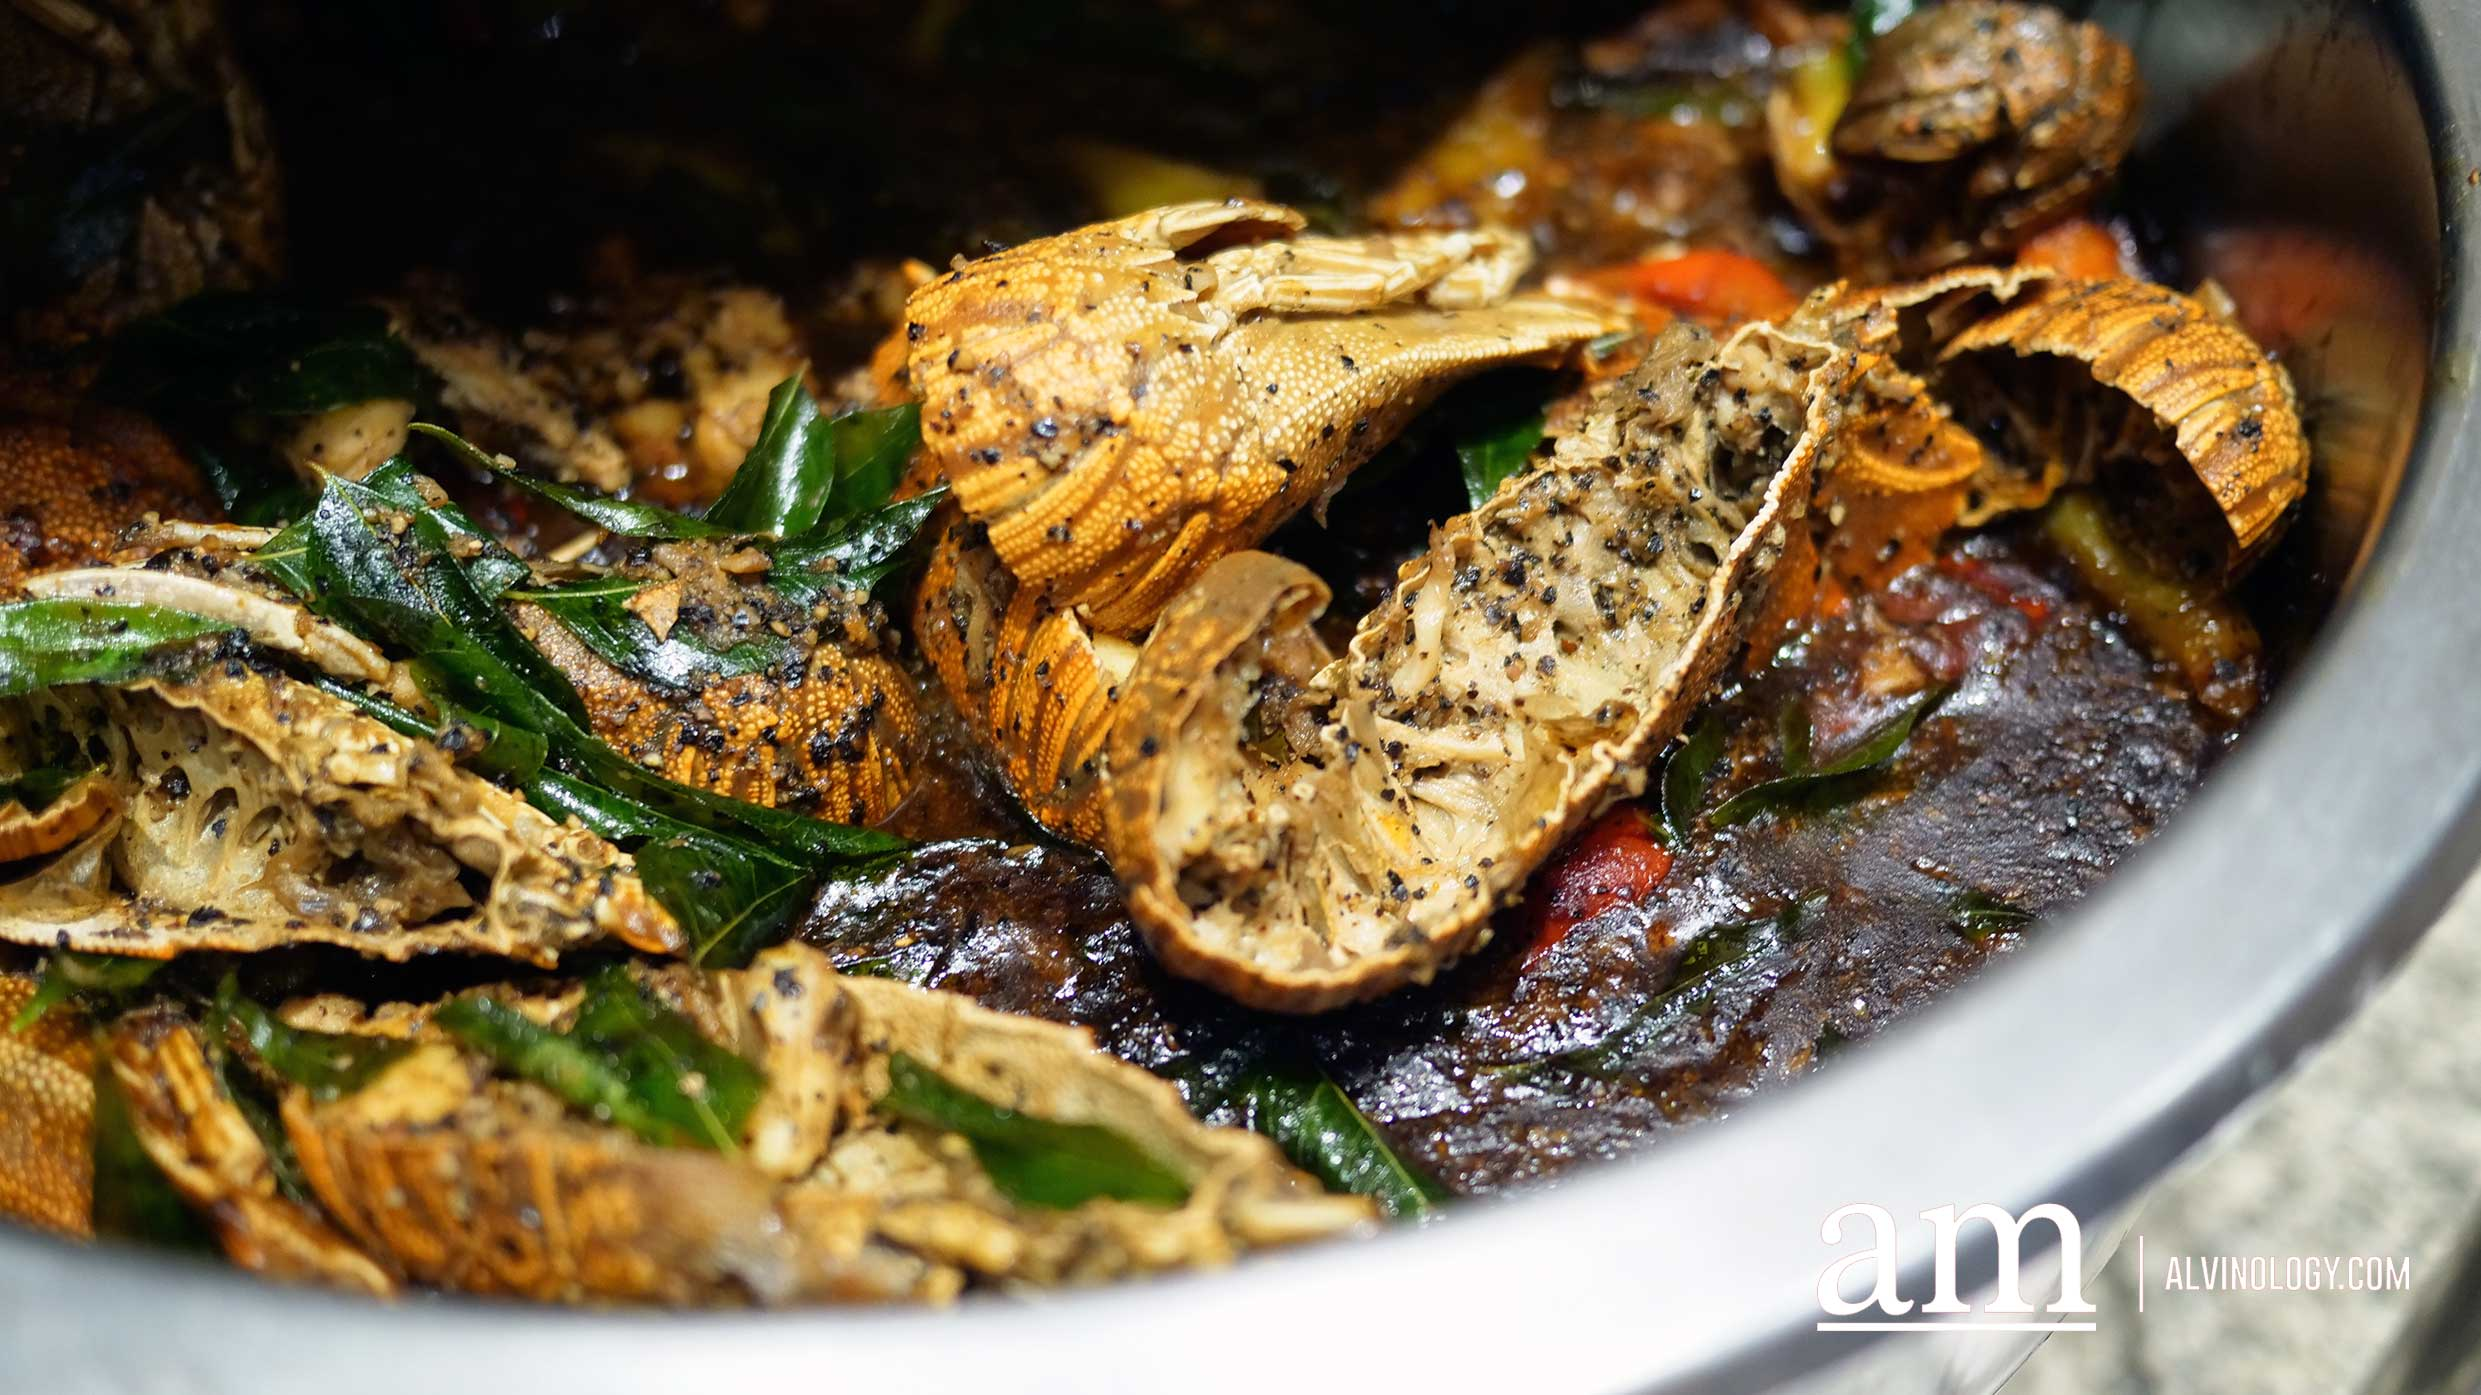 Stir-fried Black Pepper Crayfish